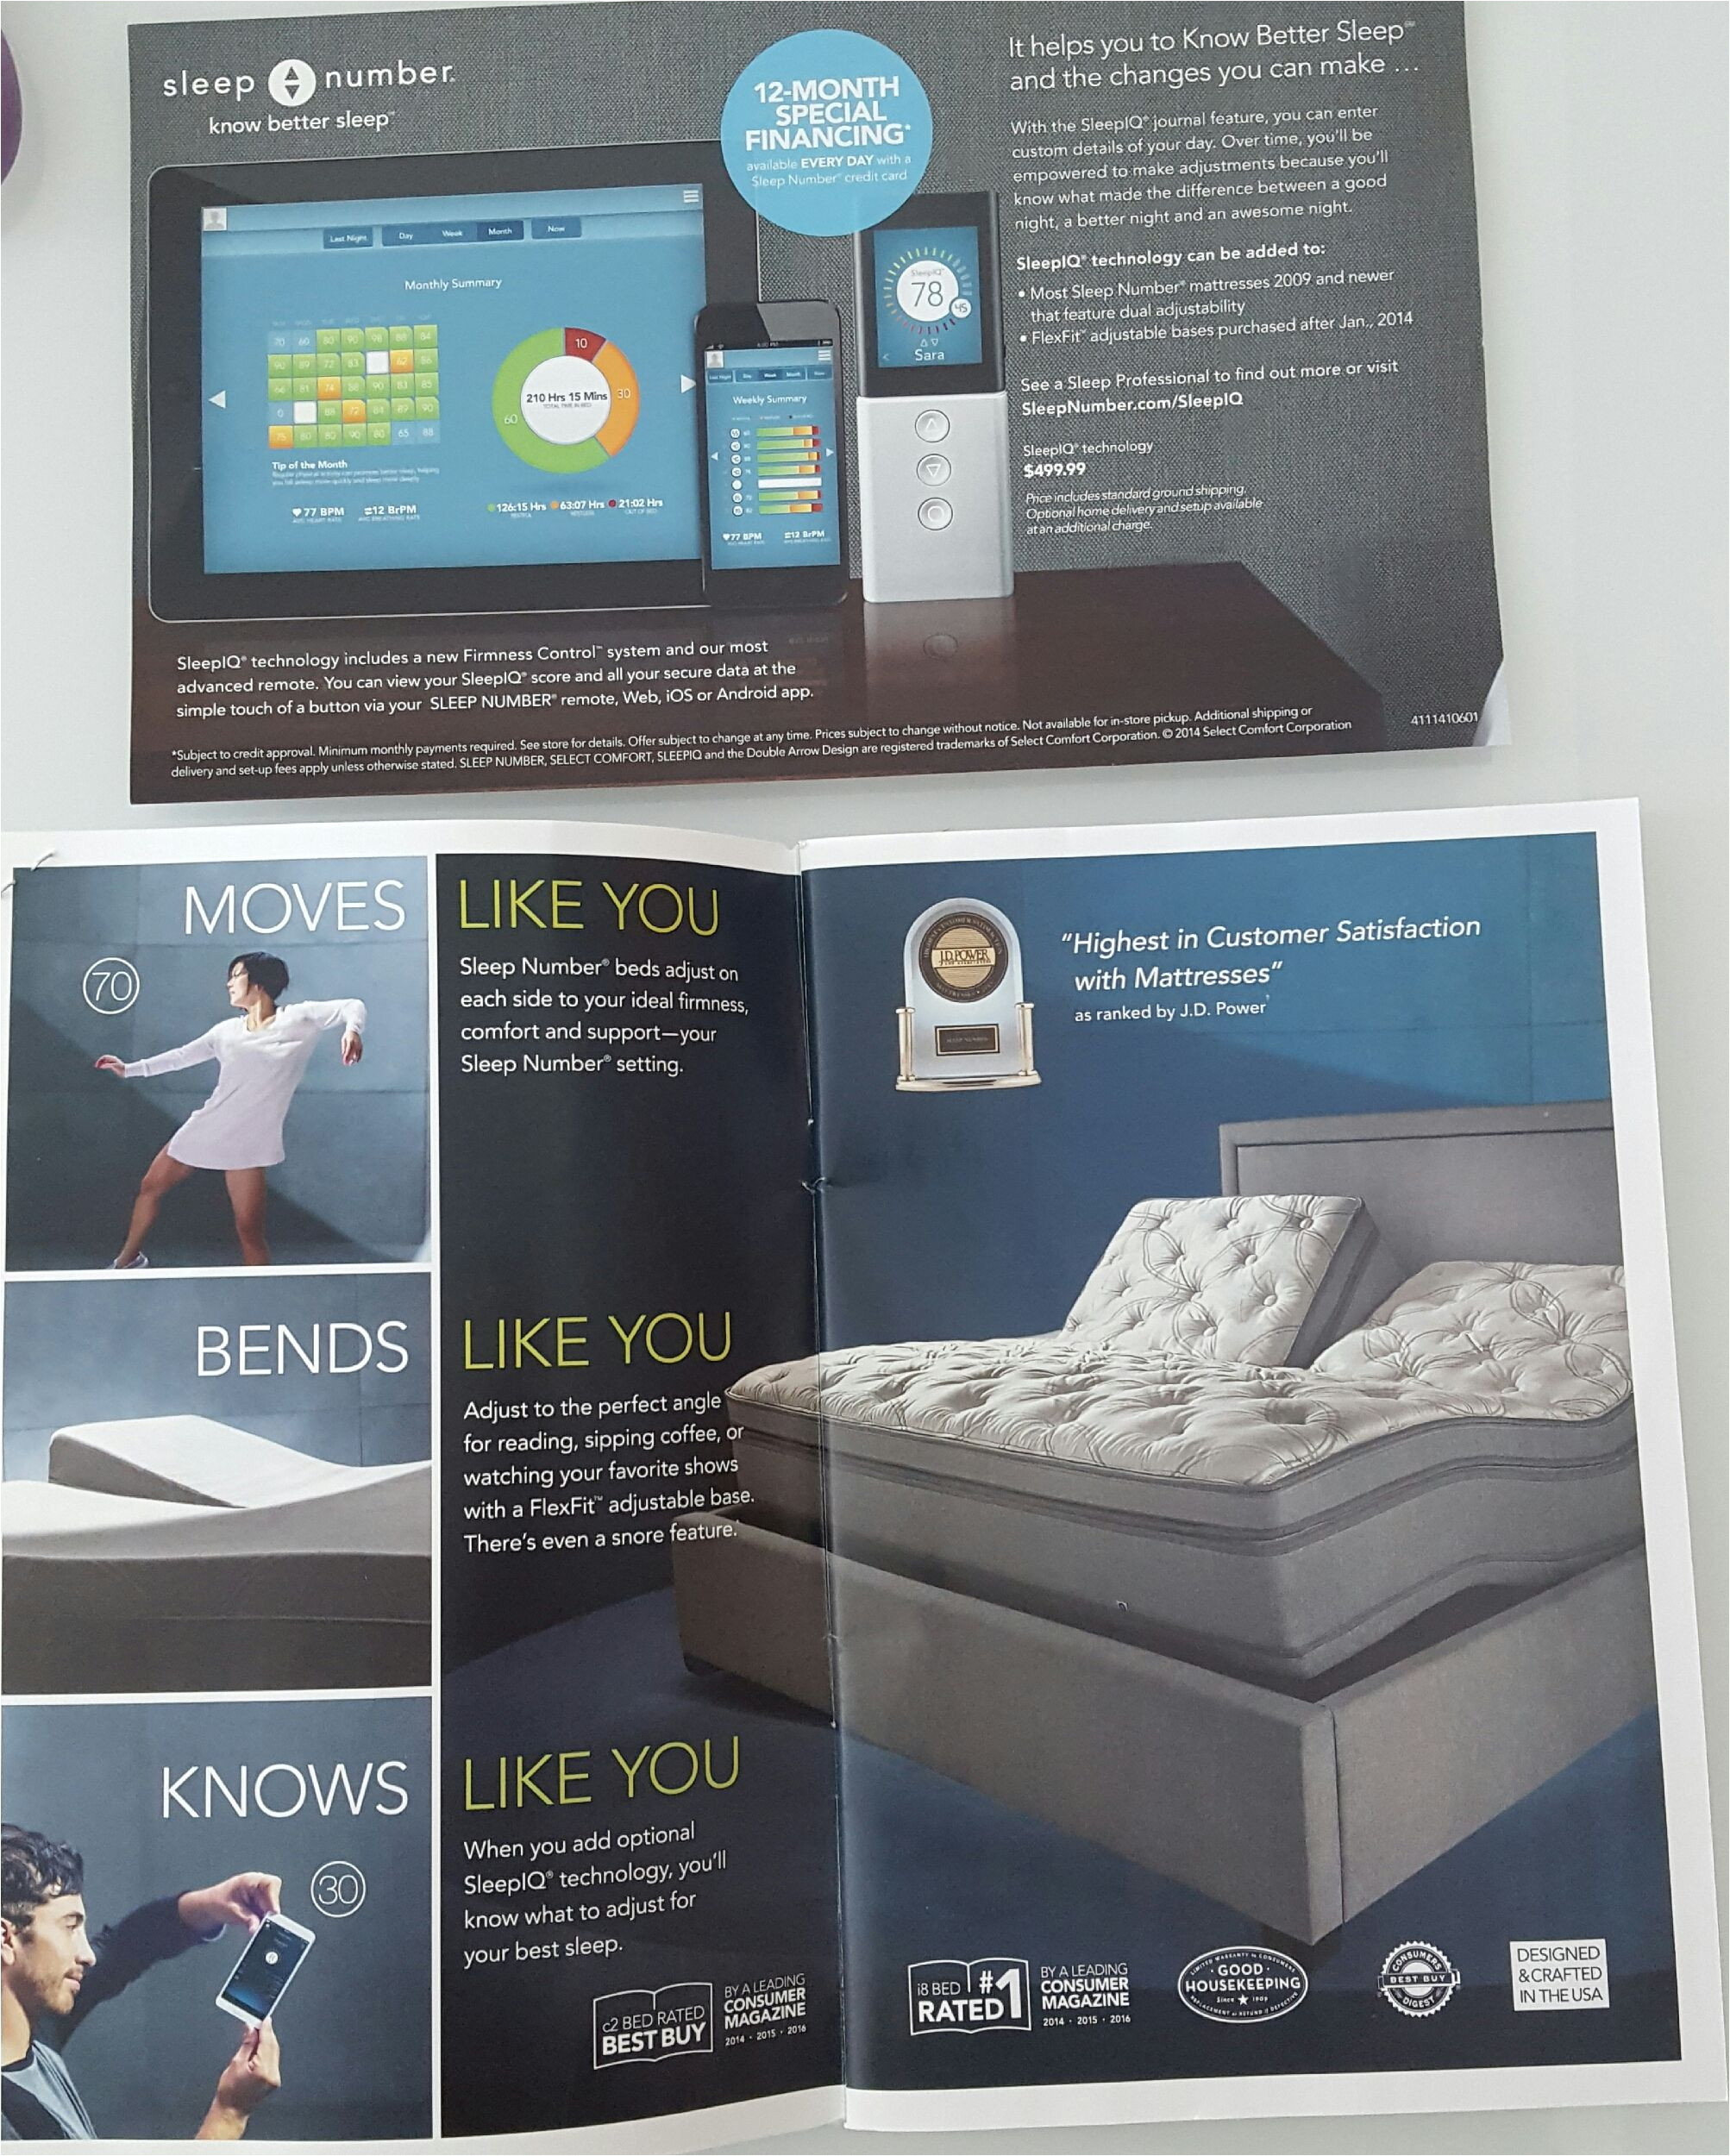 sleep number bed with sleep iq technology track how you sleep and make changes to improve committosleep freesample